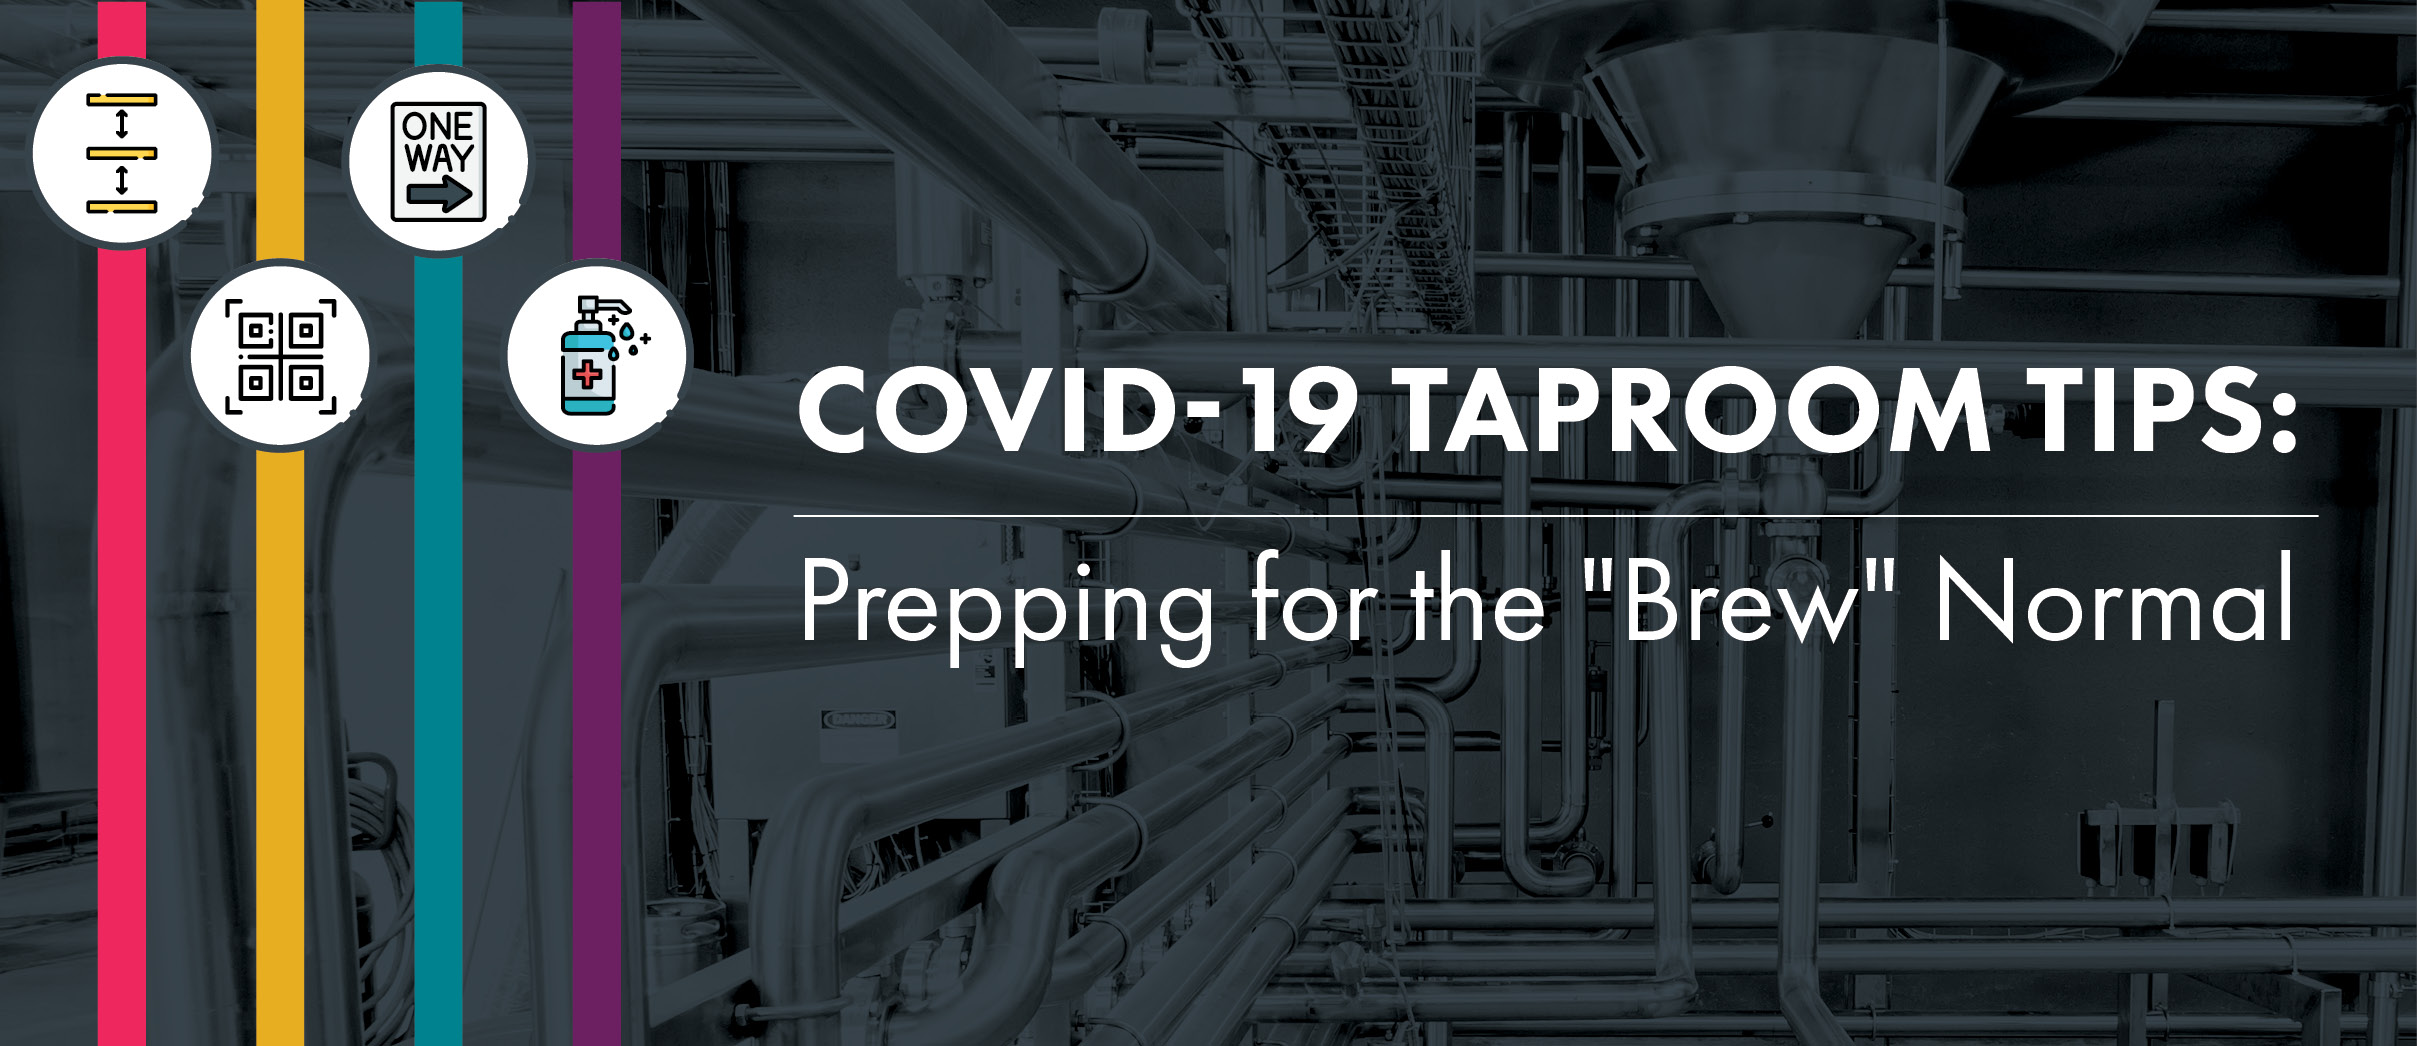 """COVID-19 Taproom Tips: Prepping Your Taproom for the """"Brew"""" Normal"""